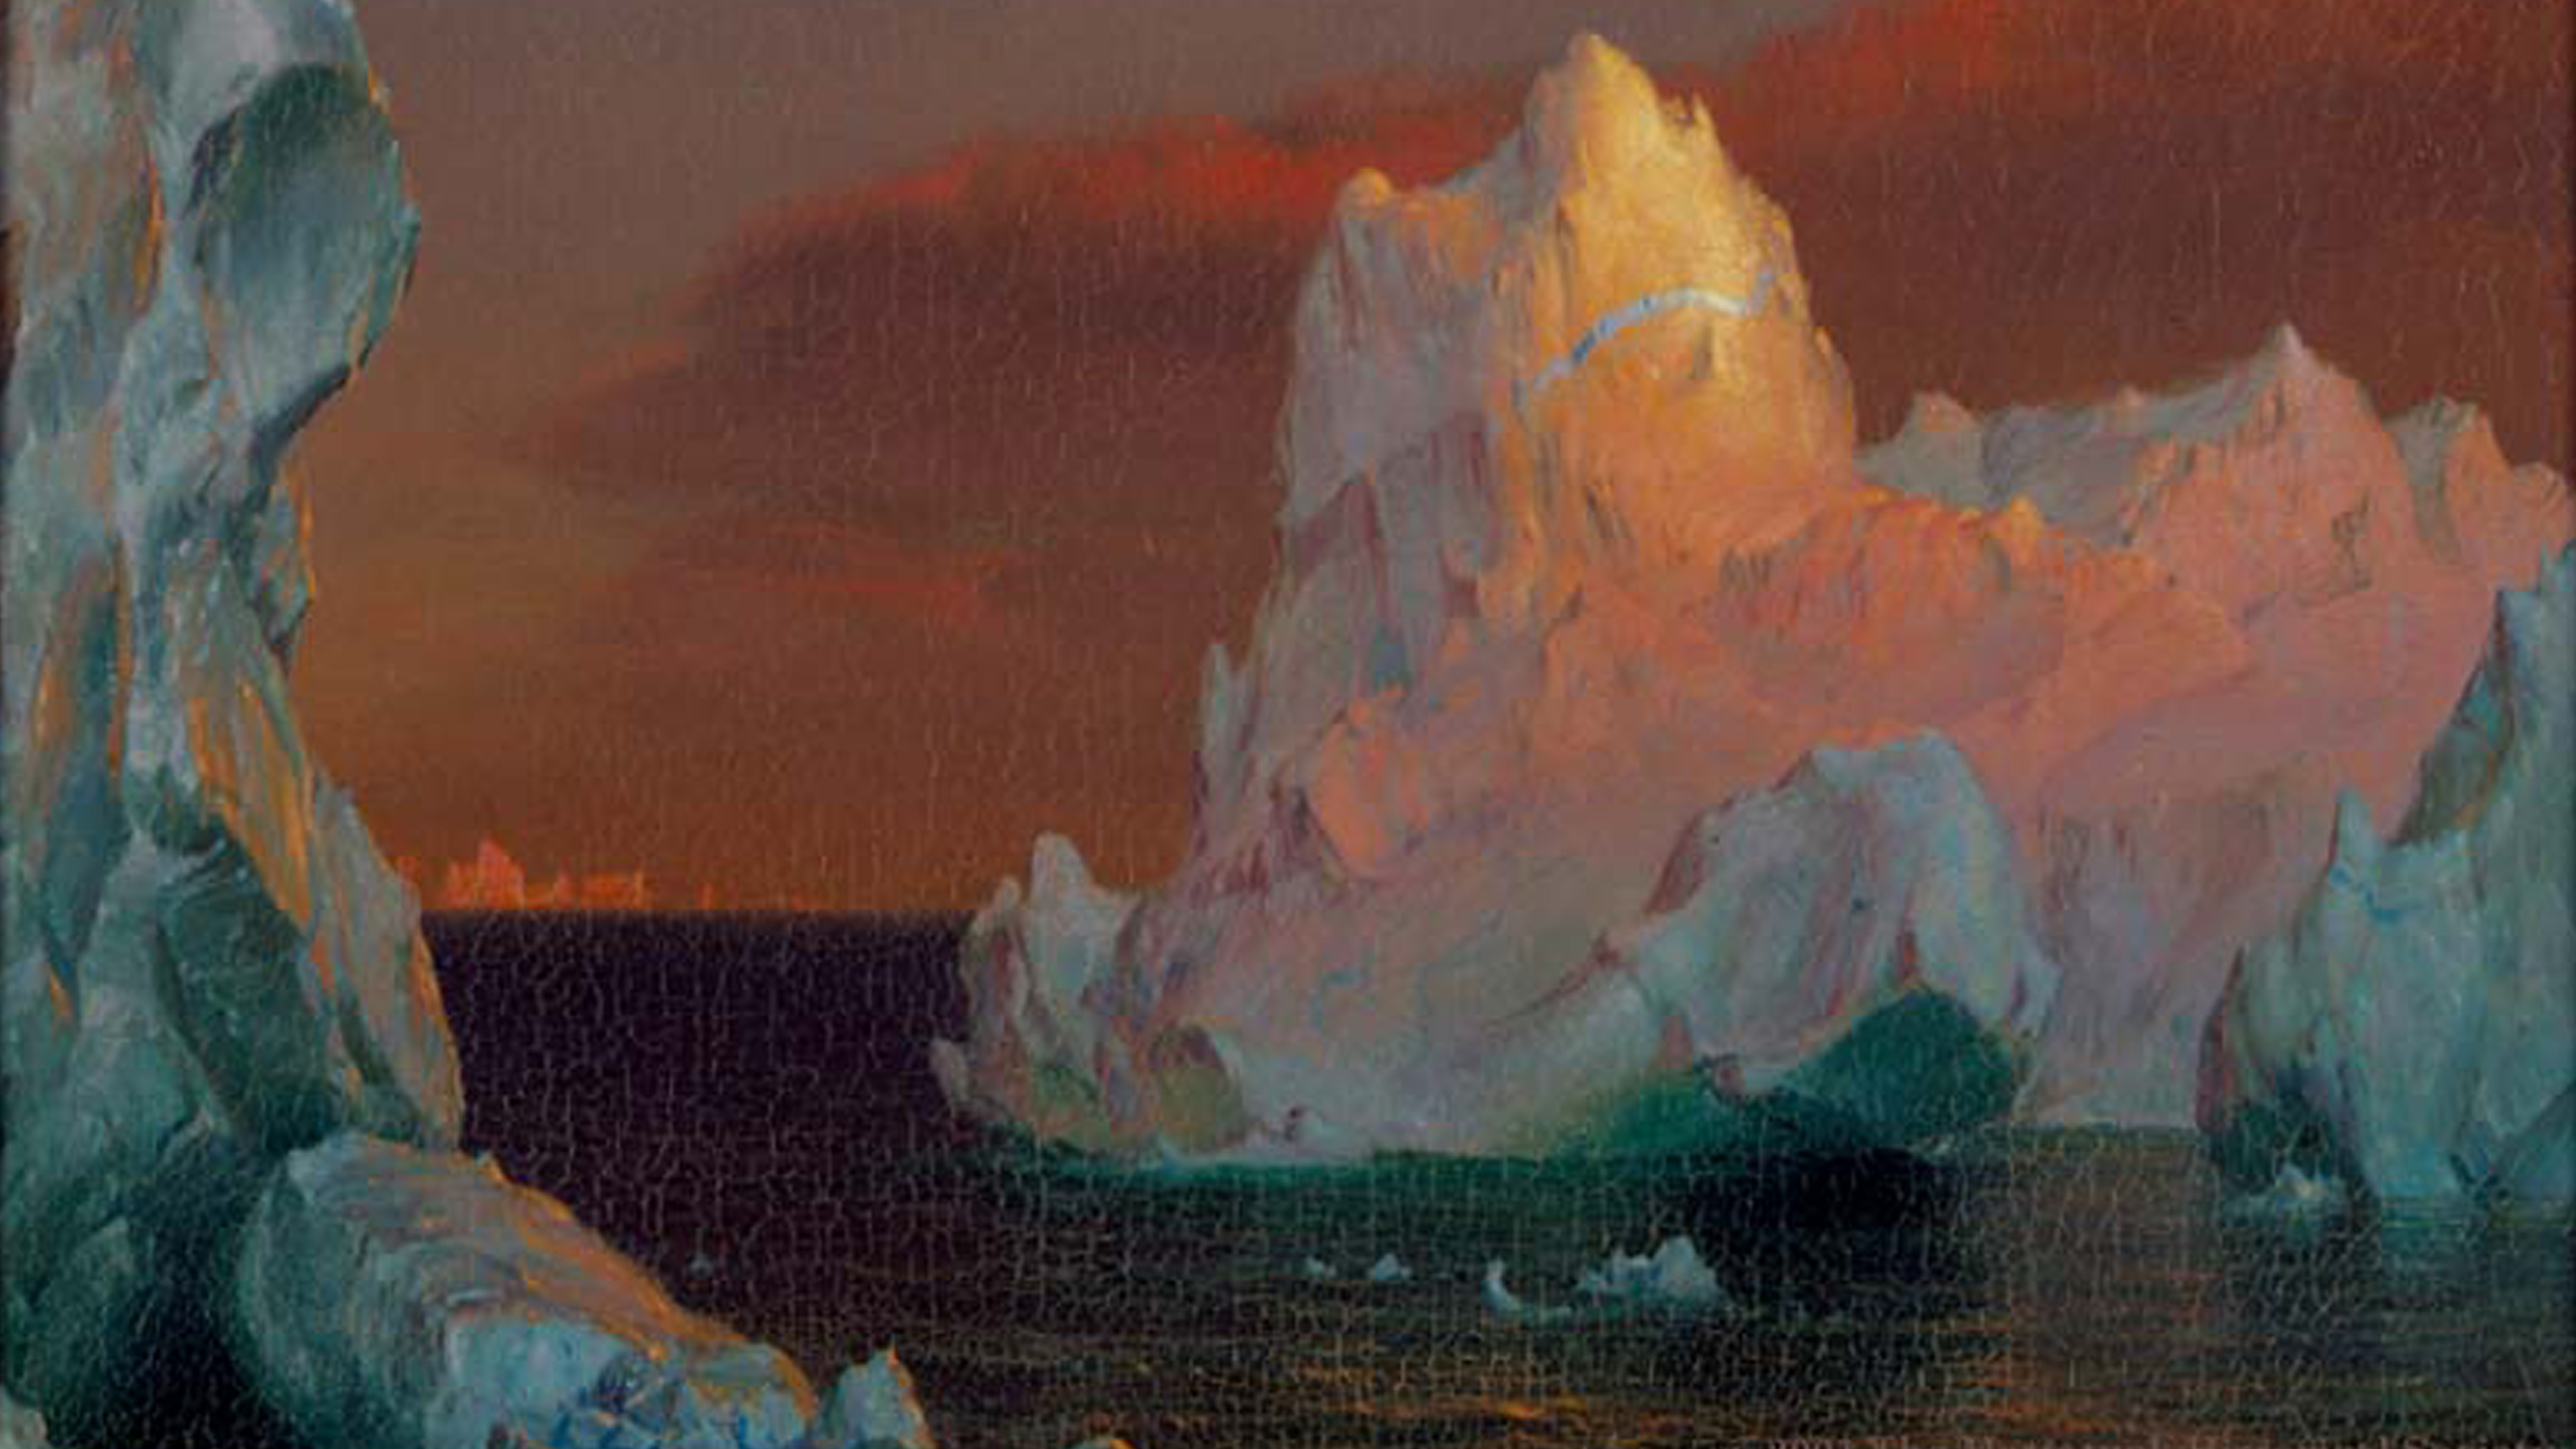 Frederic Church painting, Icebergs, from the Mattatuck Museum collection